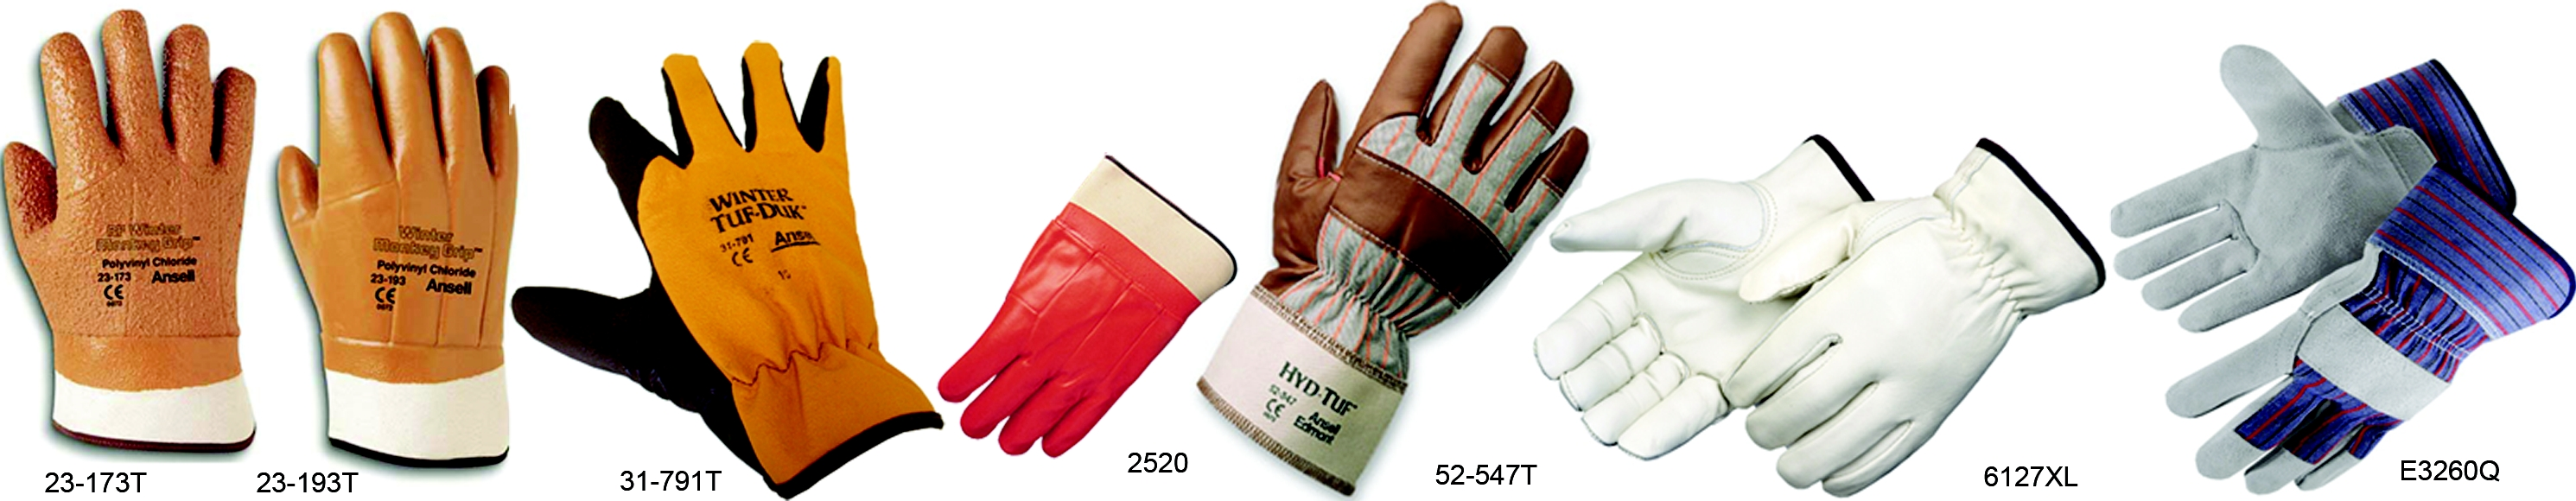 PicturesCategory/Gloves.jpg